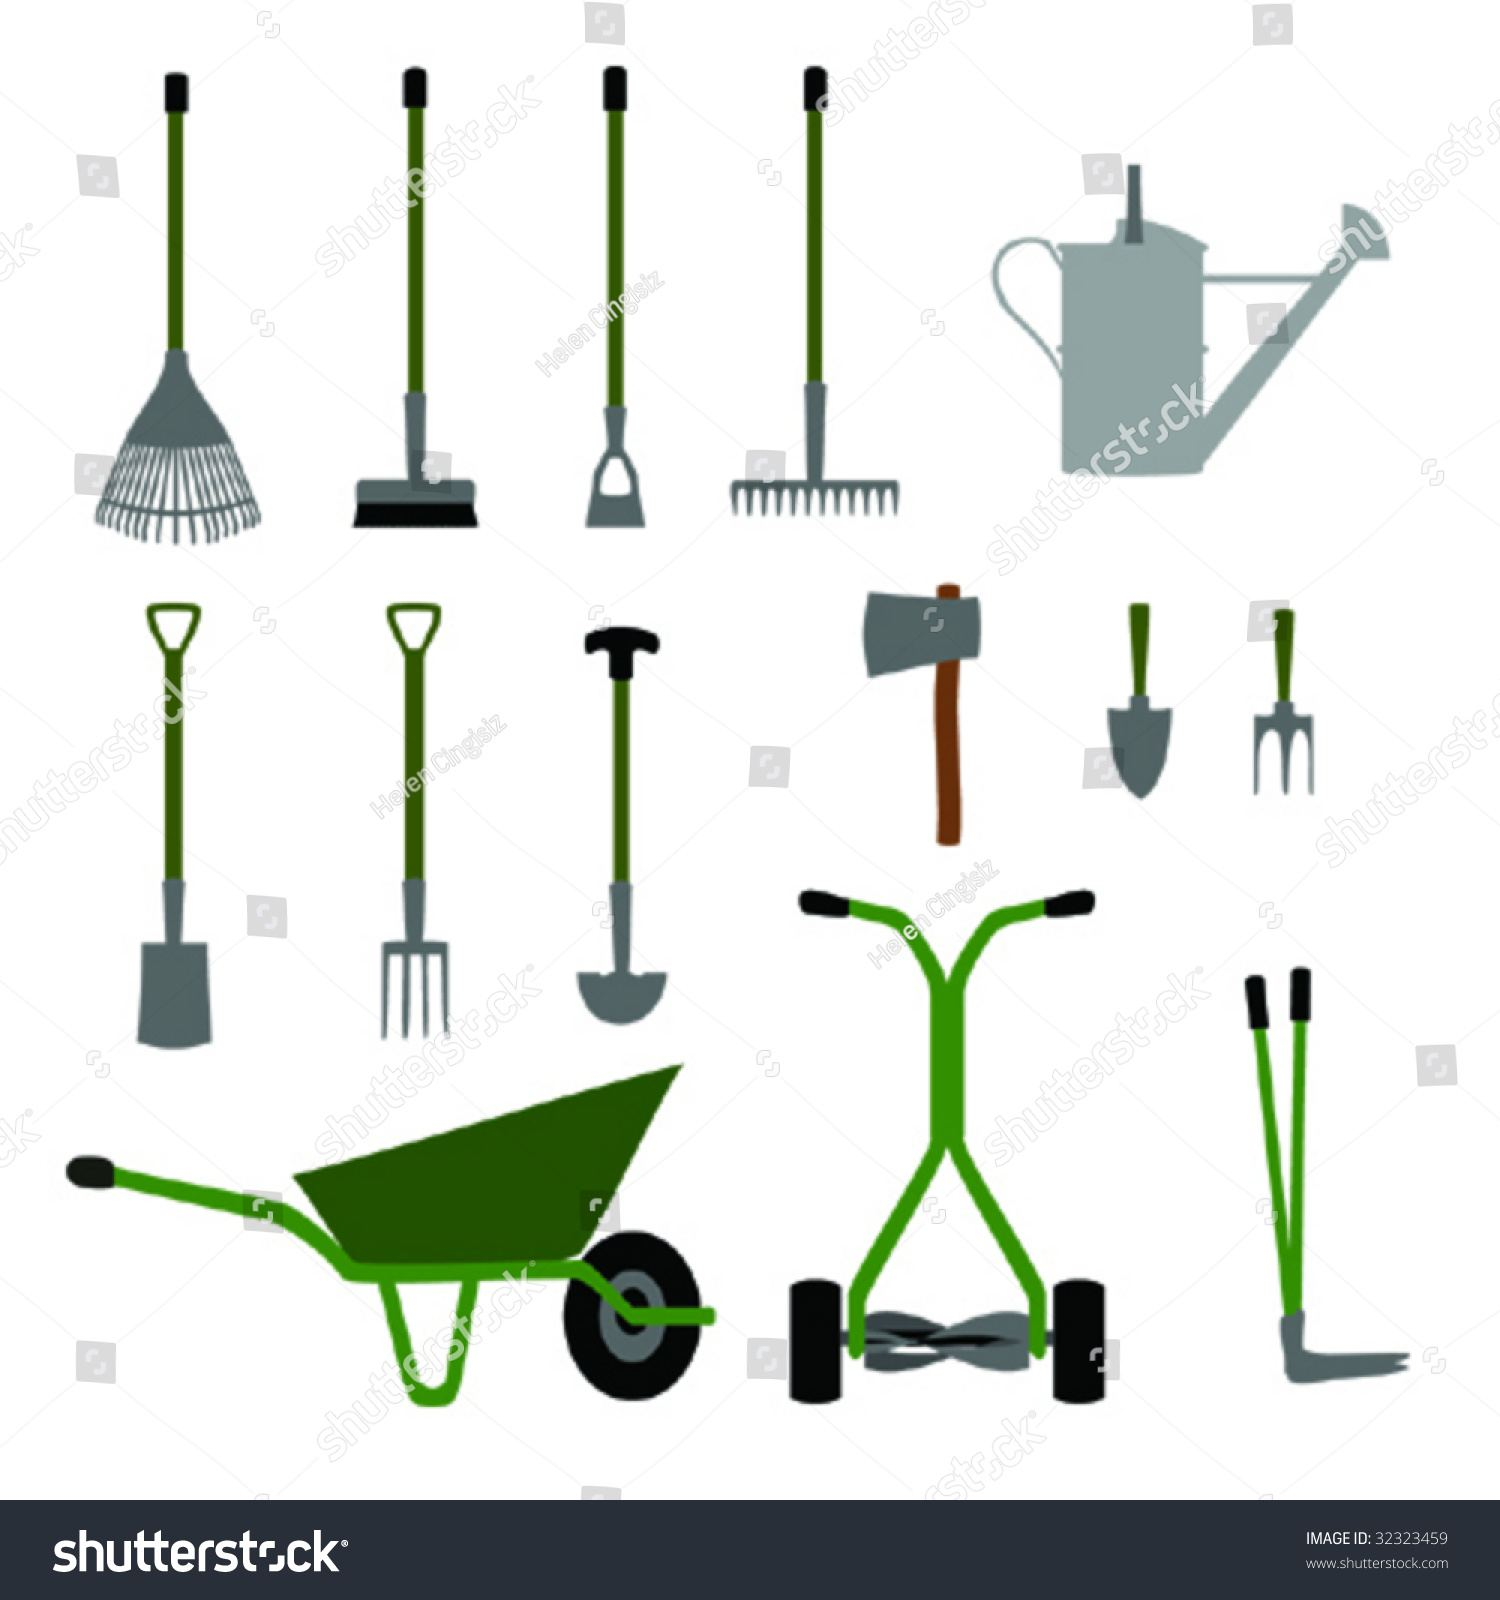 Garden tools - Elegant Gardening tools Equipment Set No1 Stock ...